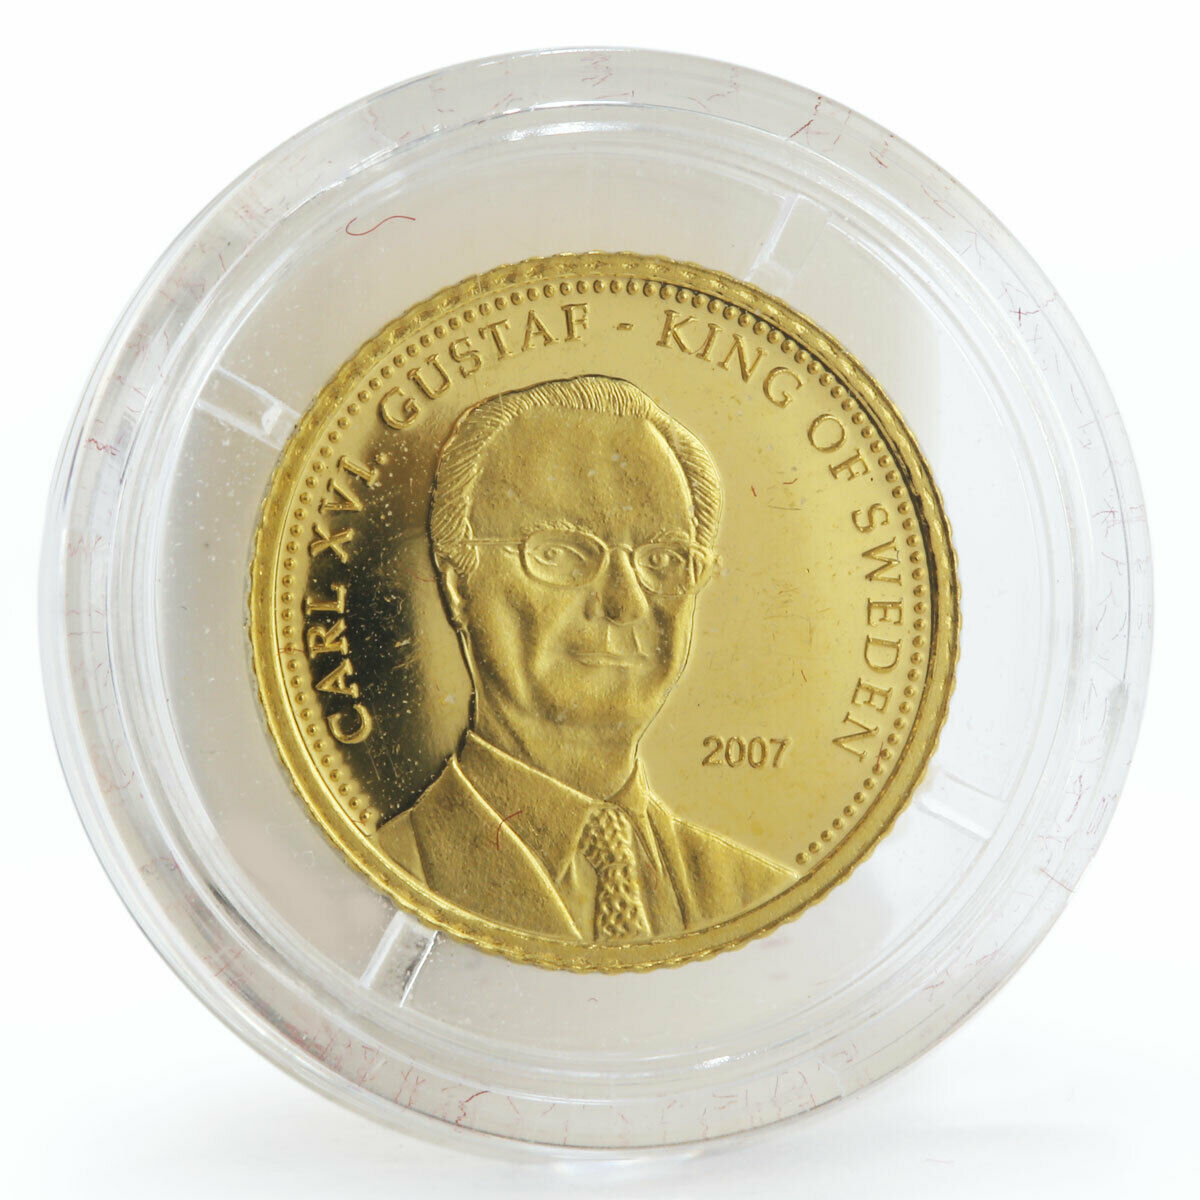 Cook Islands 10 dollars Carl XVI Gustaf King of Sweden gold coin 2007